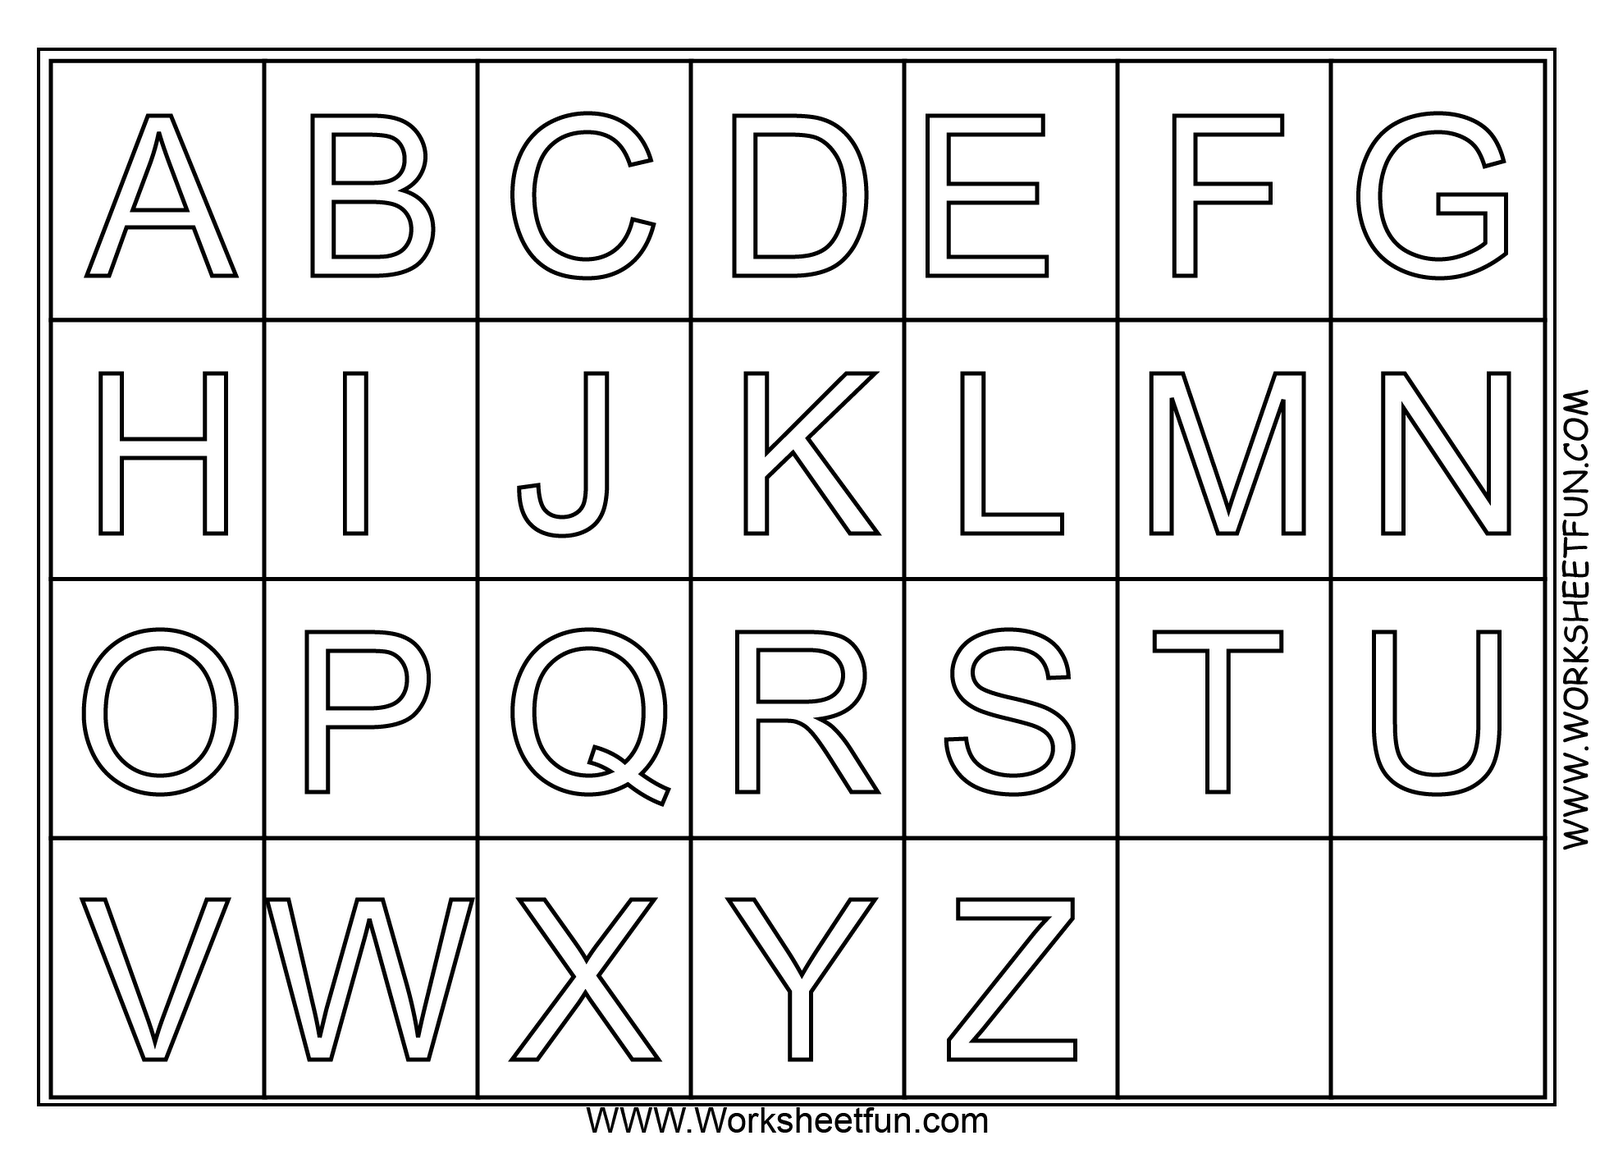 A z alphabet coloring pages download and print for free – Free Alphabet Worksheets